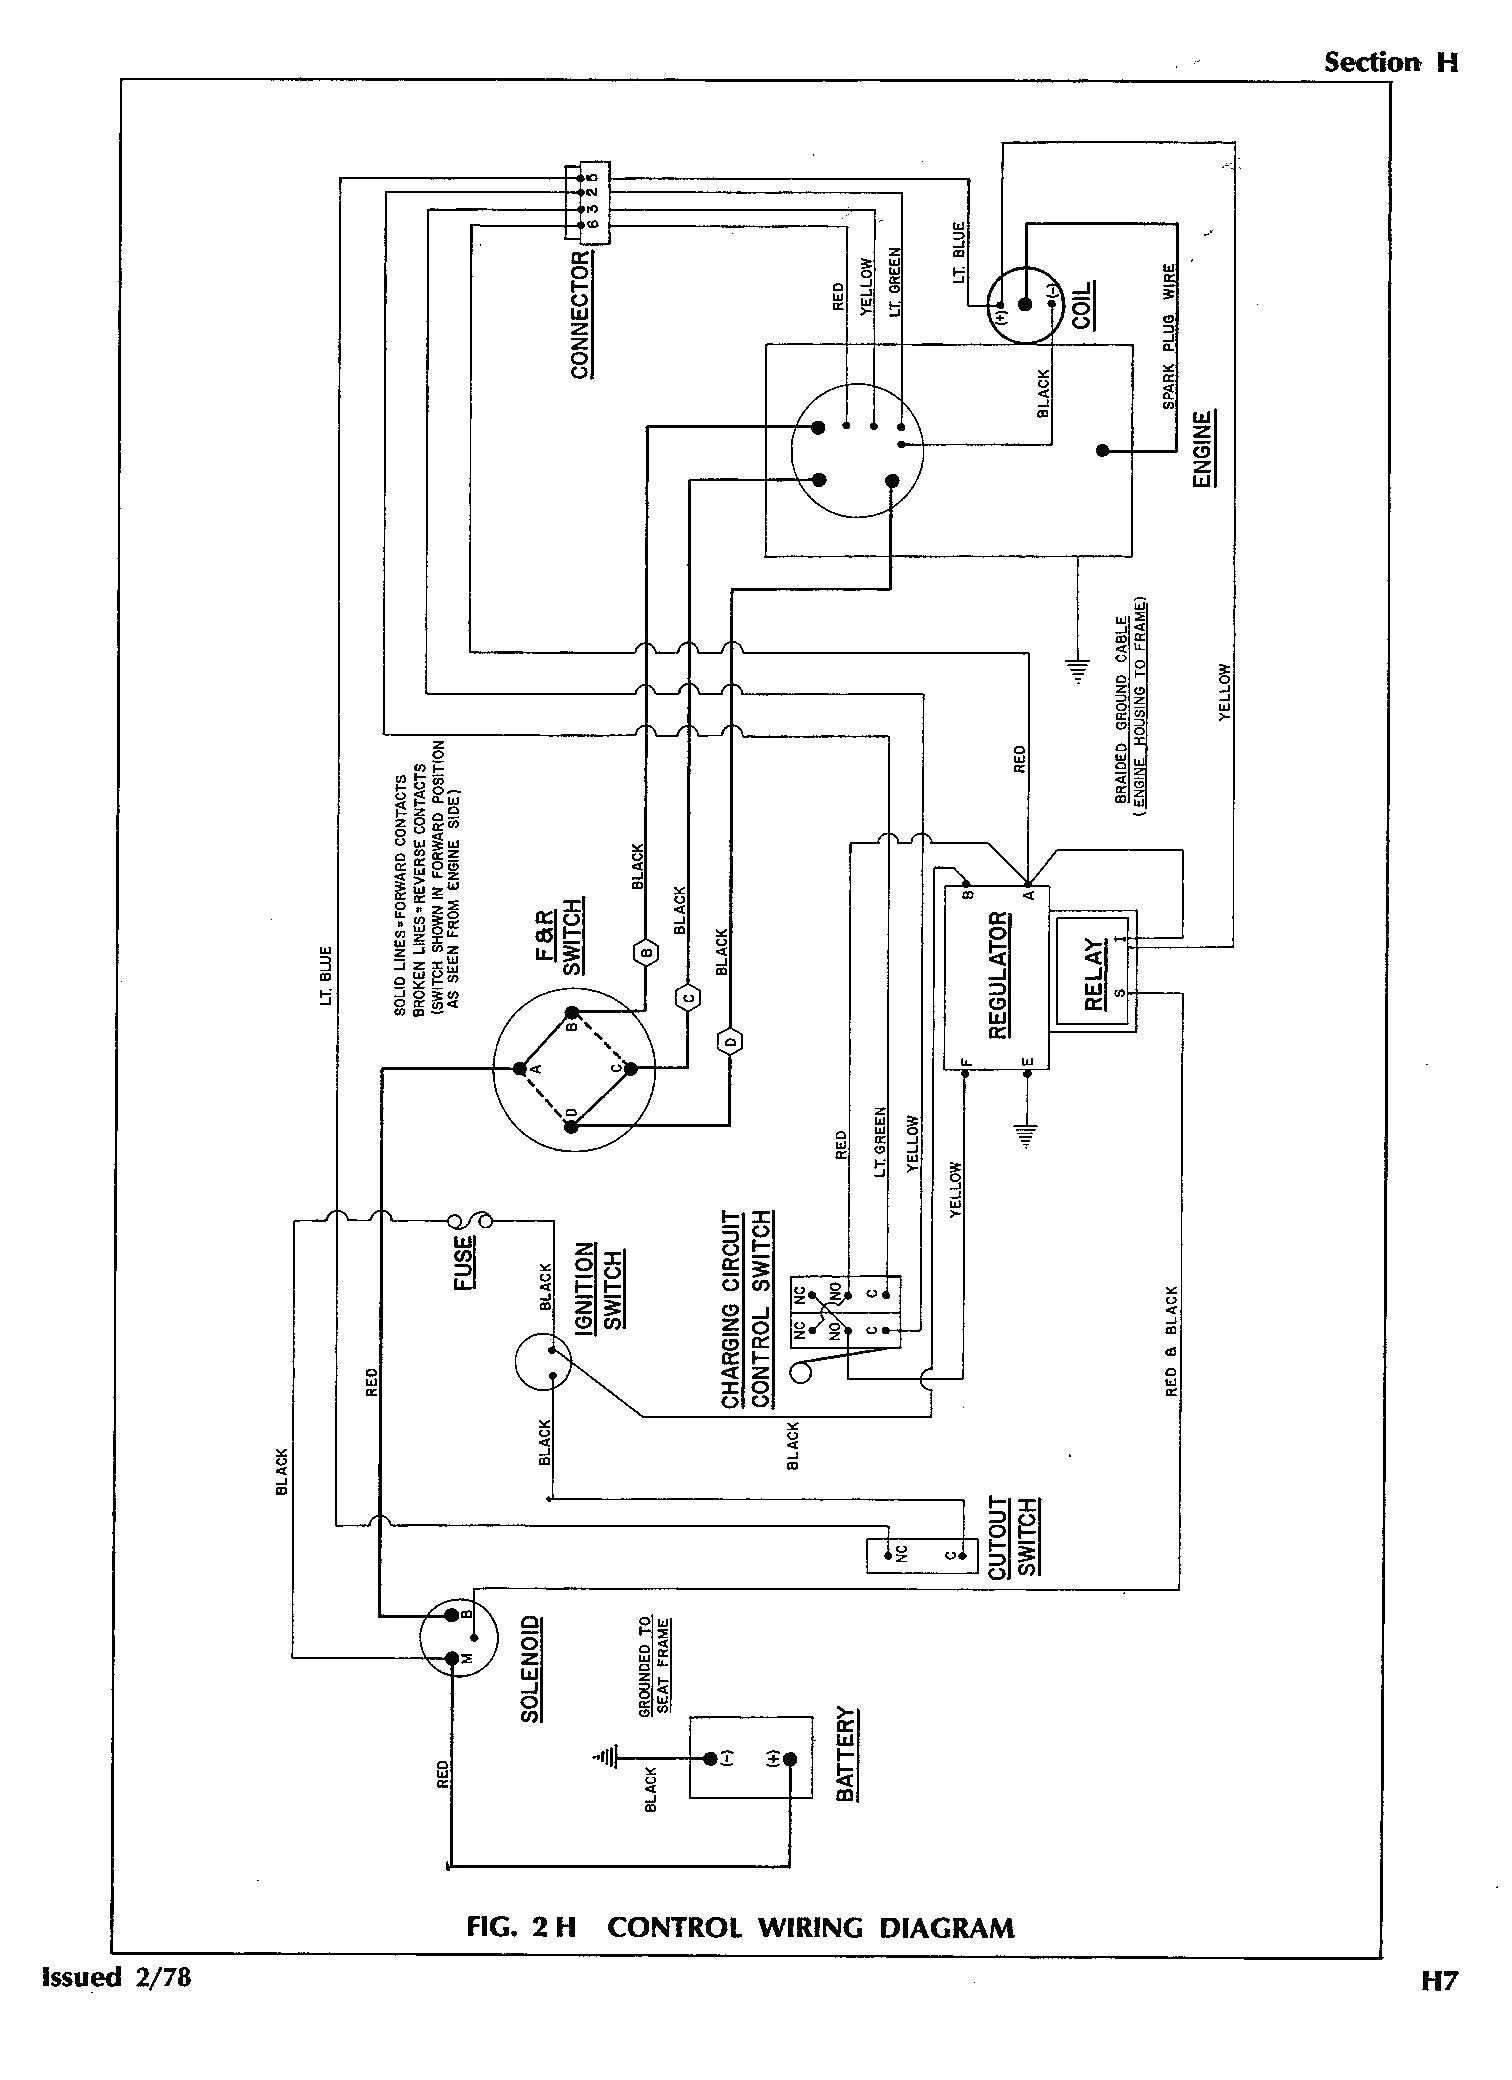 ez go golf cart wiring diagram gas engine Download-Wiring Diagrams for Yamaha Golf Carts Valid Wiring Diagram for 2002 Ezgo Gas Golf Cart Ez 15-s